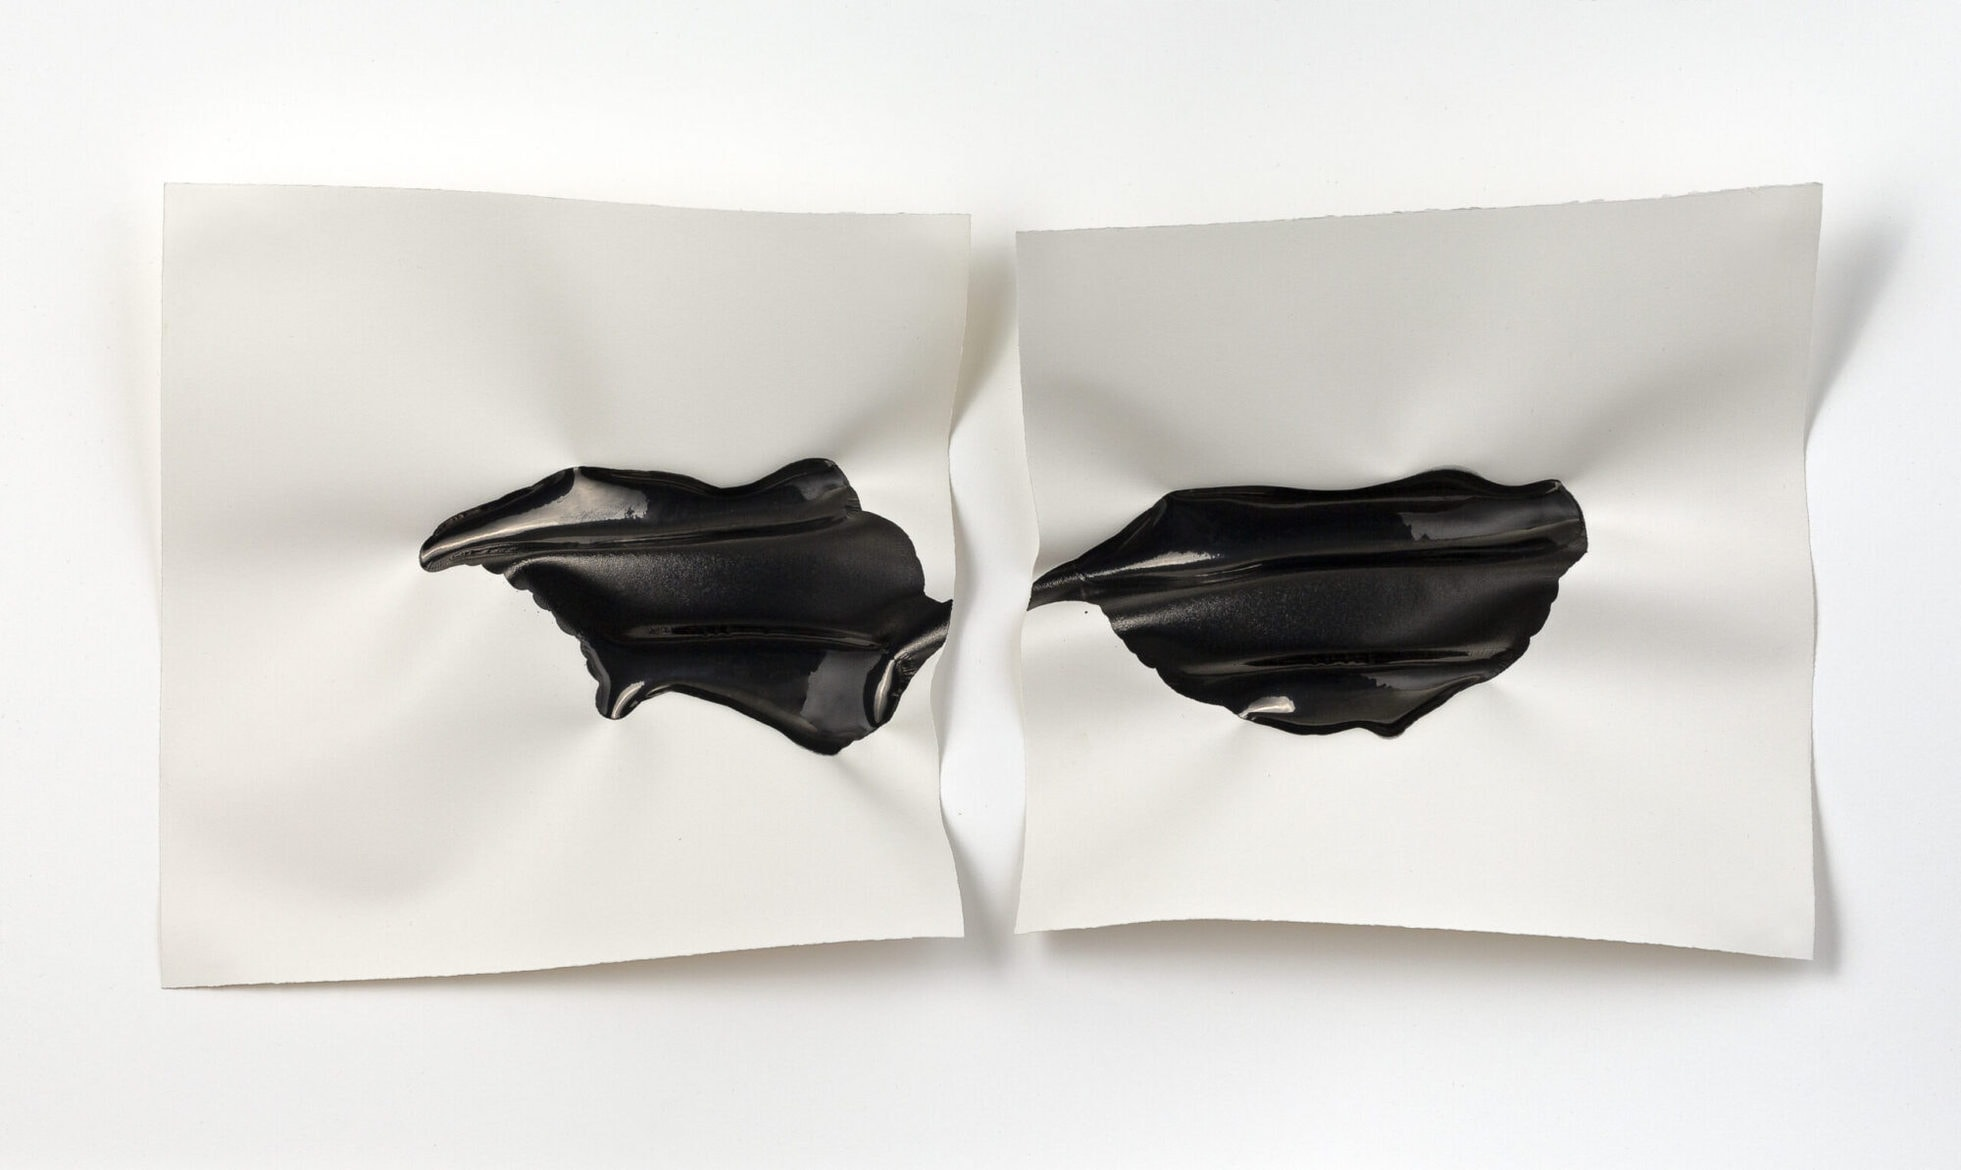 Emma Fielden, 'Confluence I', 2020, diptychs, ink on 300gsm Arches paper, framed, 74 x 45 cm